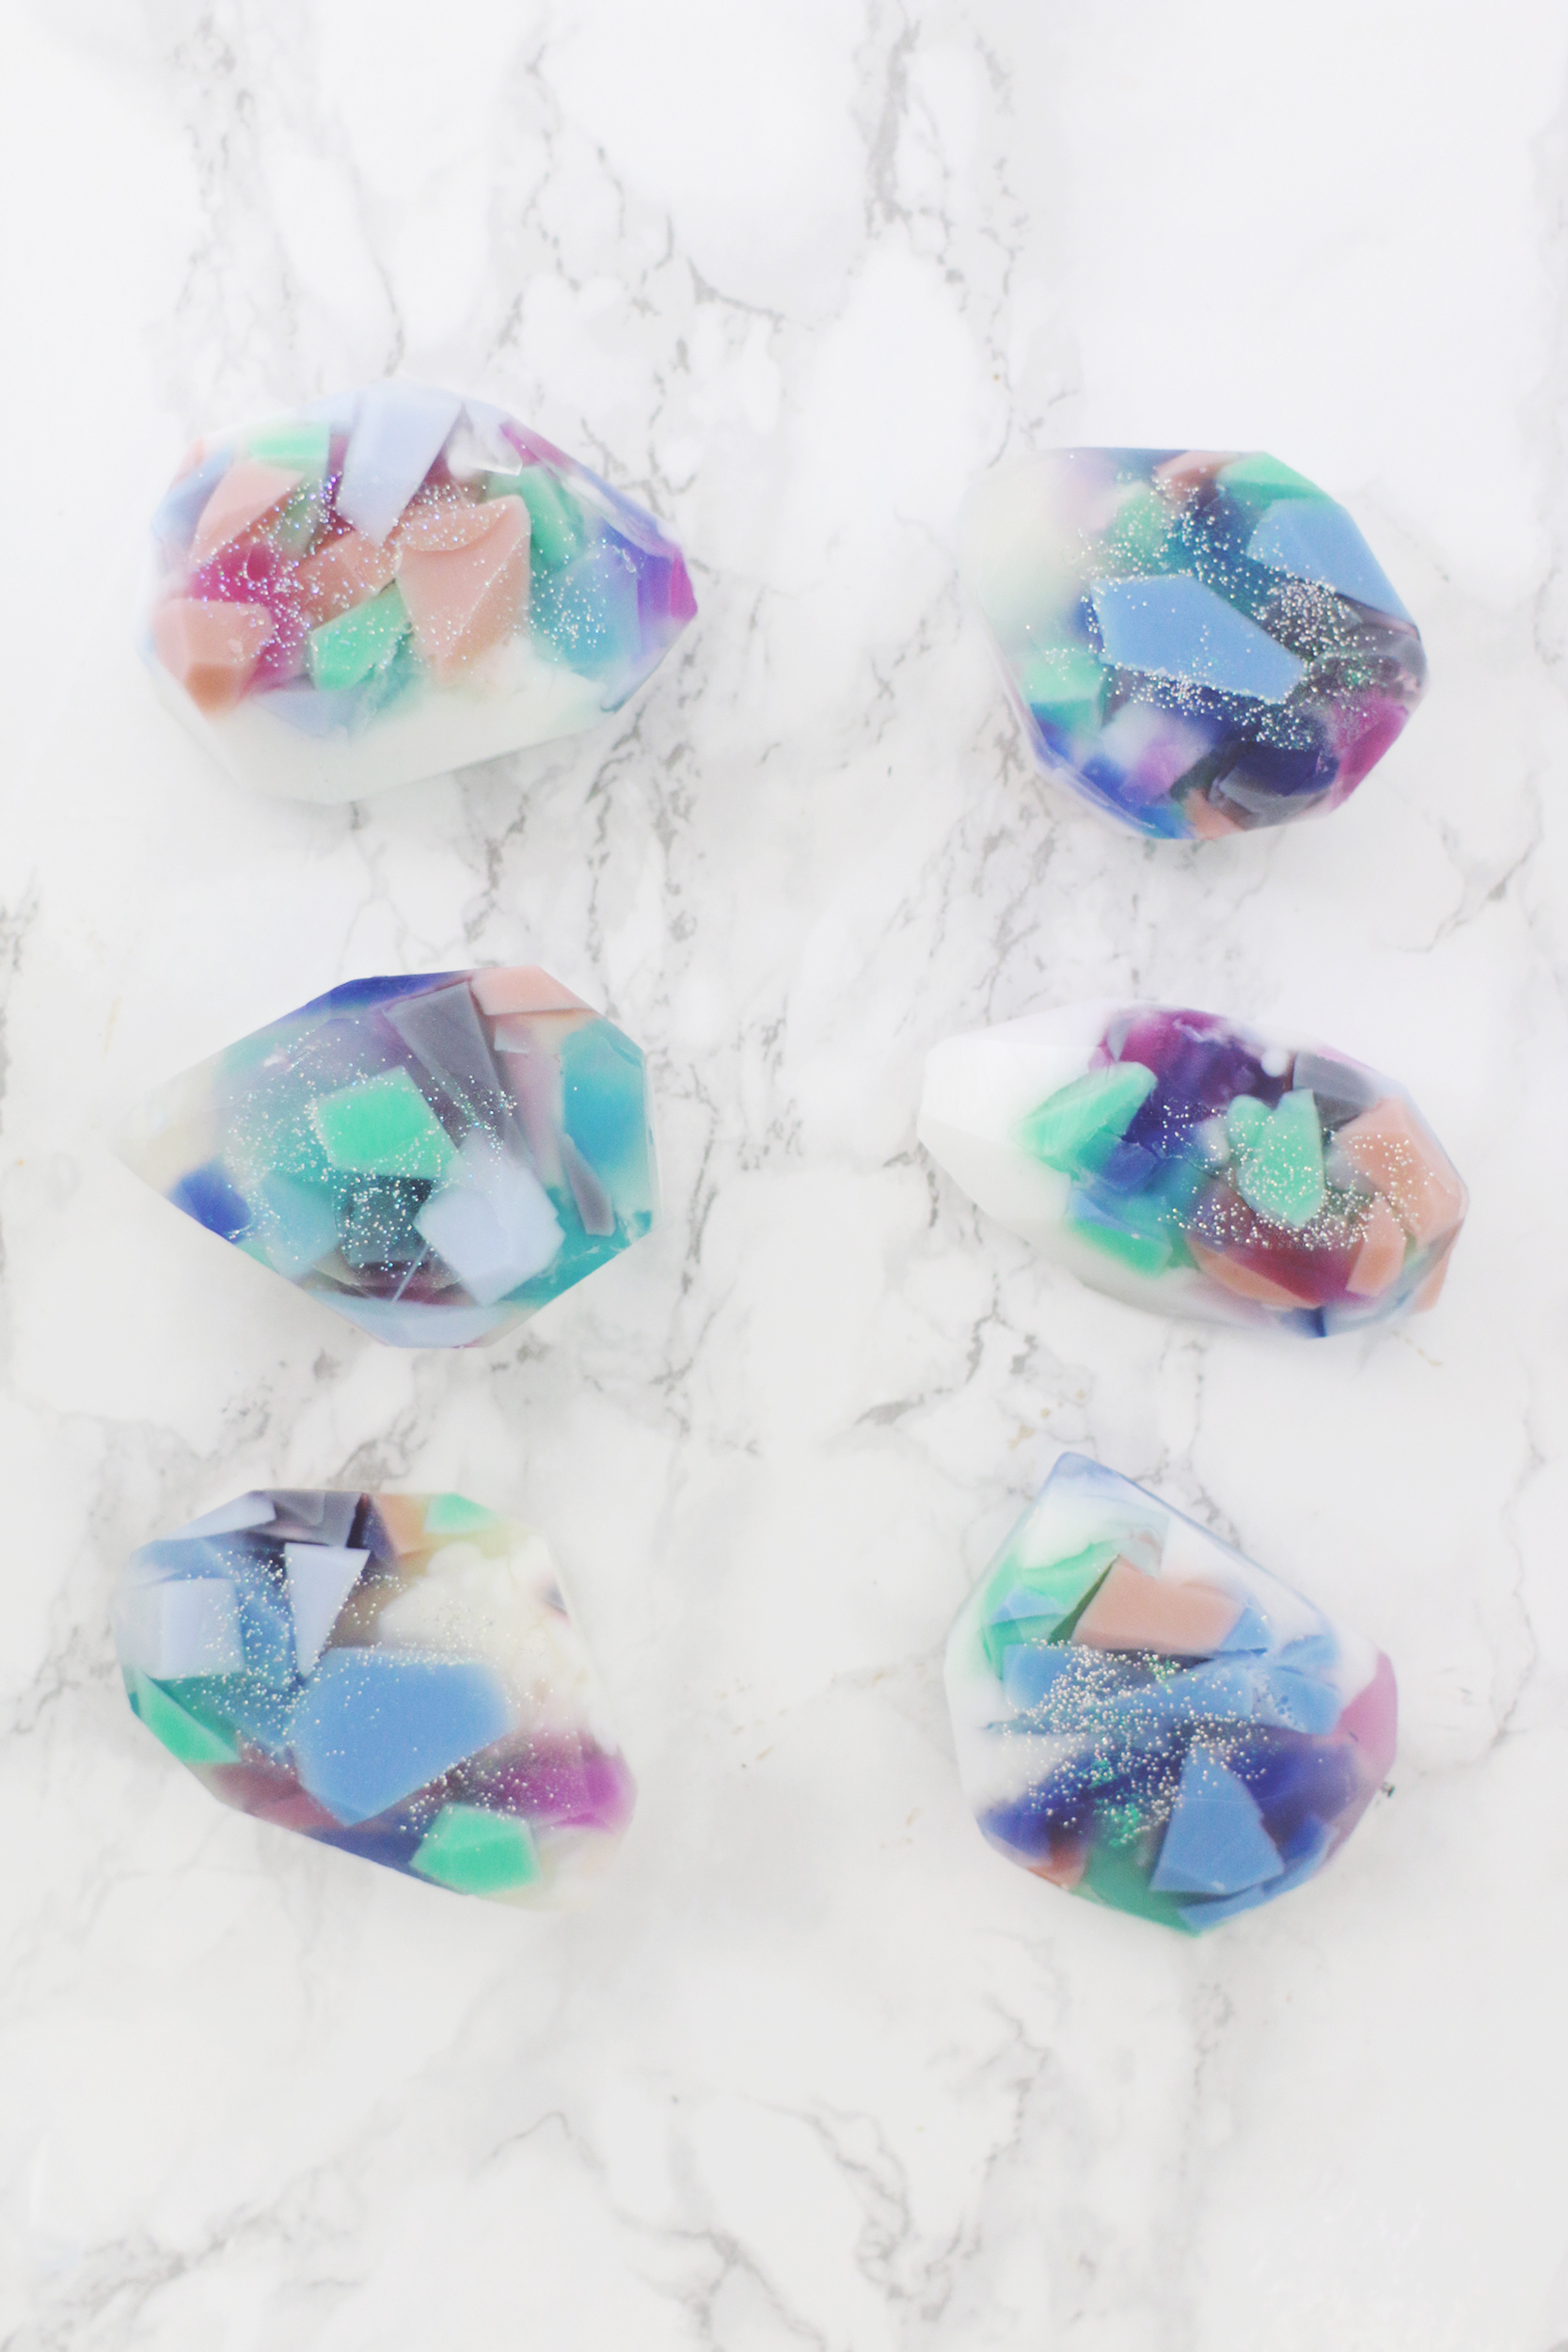 Gemstone Soap Diy Two Ways A Beautiful Mess